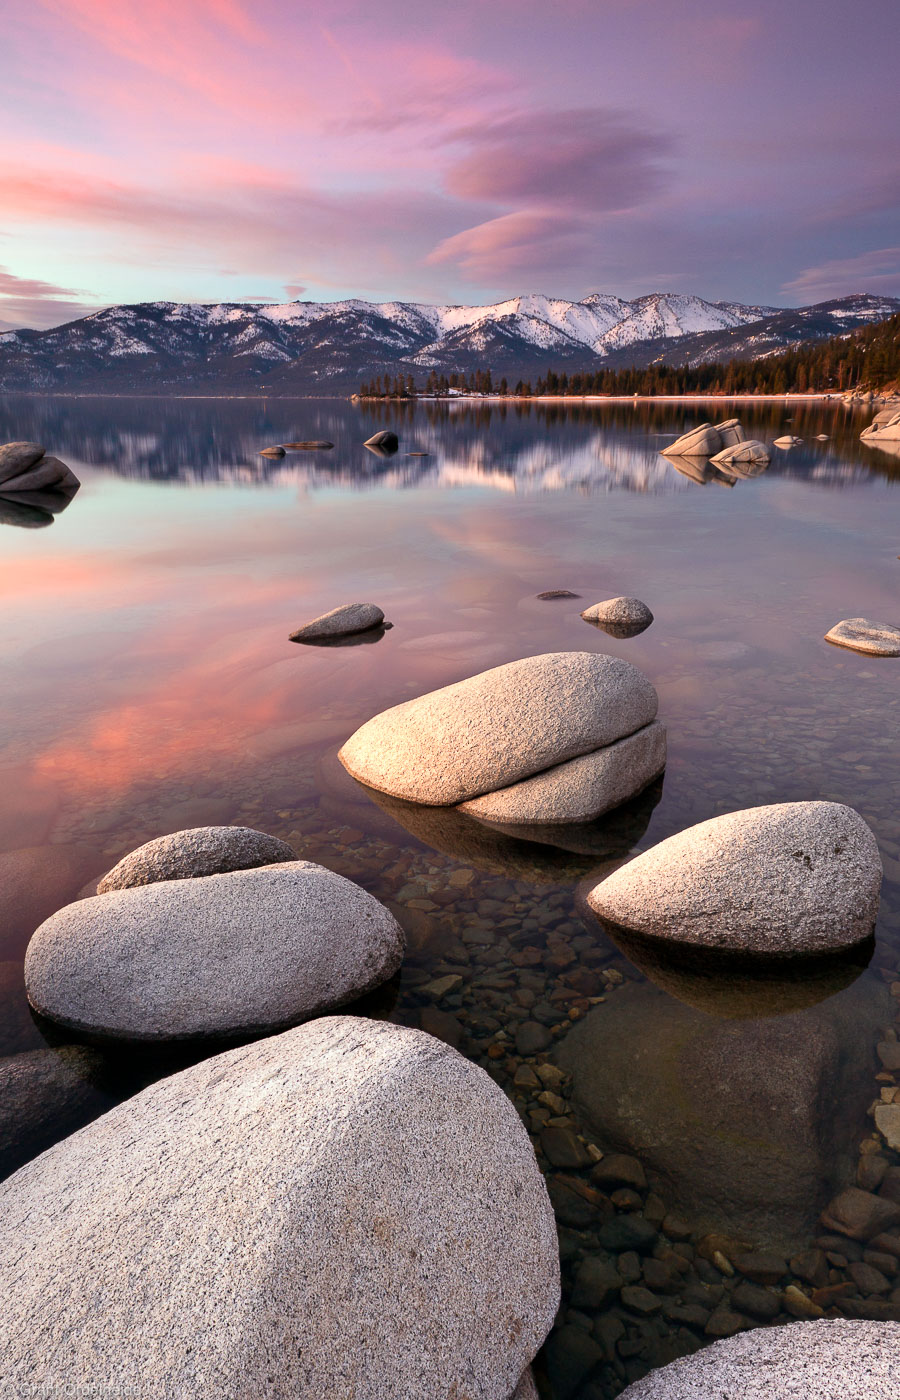 lake tahoe, clear, sunset, beautiful, clouds, pink, boulders, water, nevada, california, sand, harbor, lenticular, photo